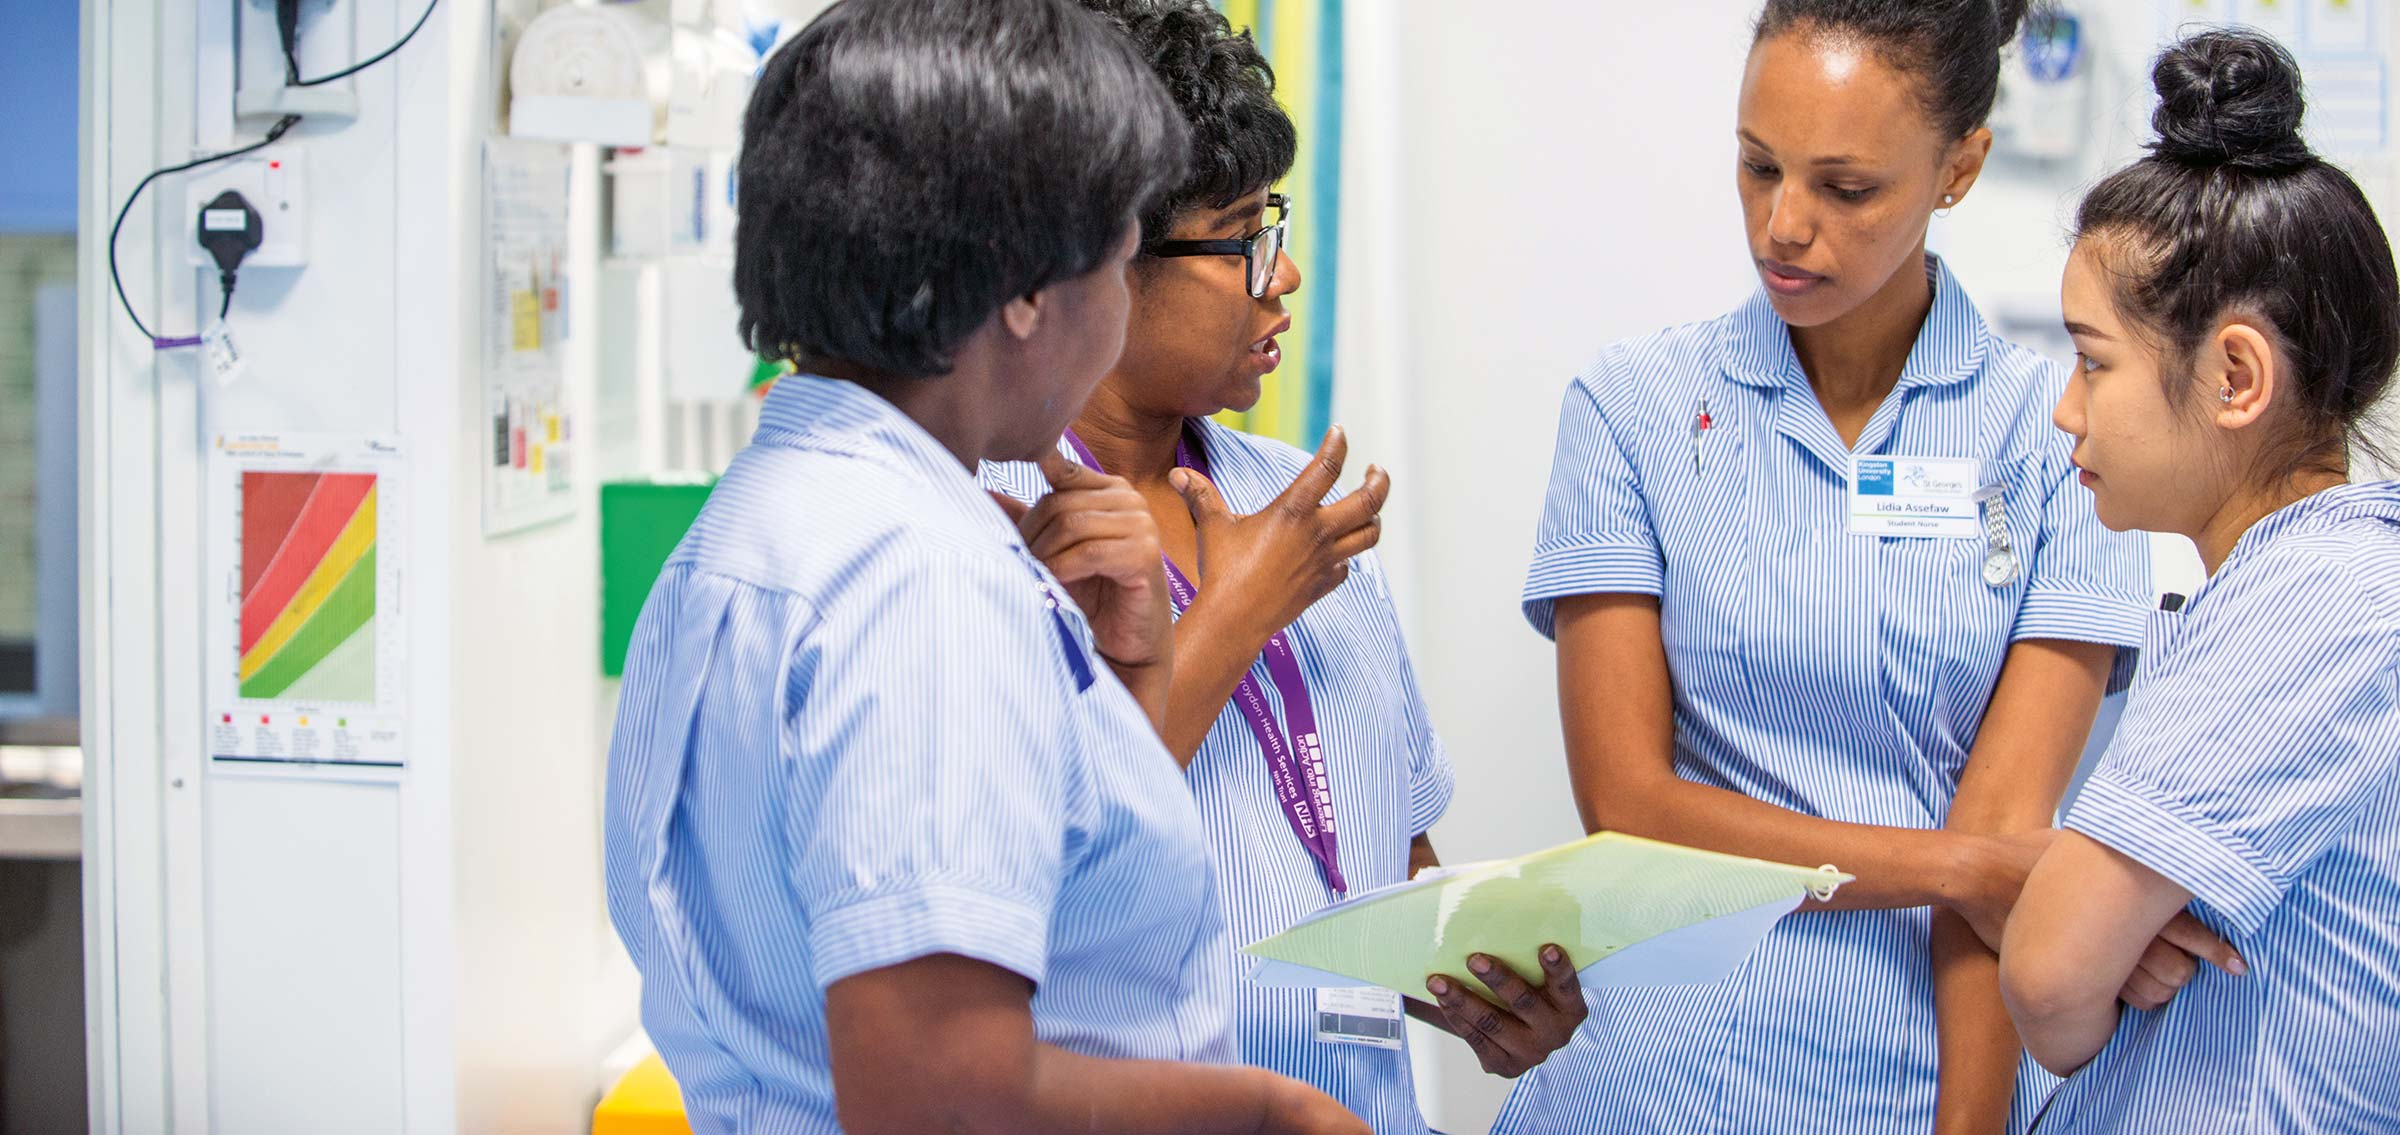 Nursing/Registered Nurse (Adult) BSc (Hons) degree course